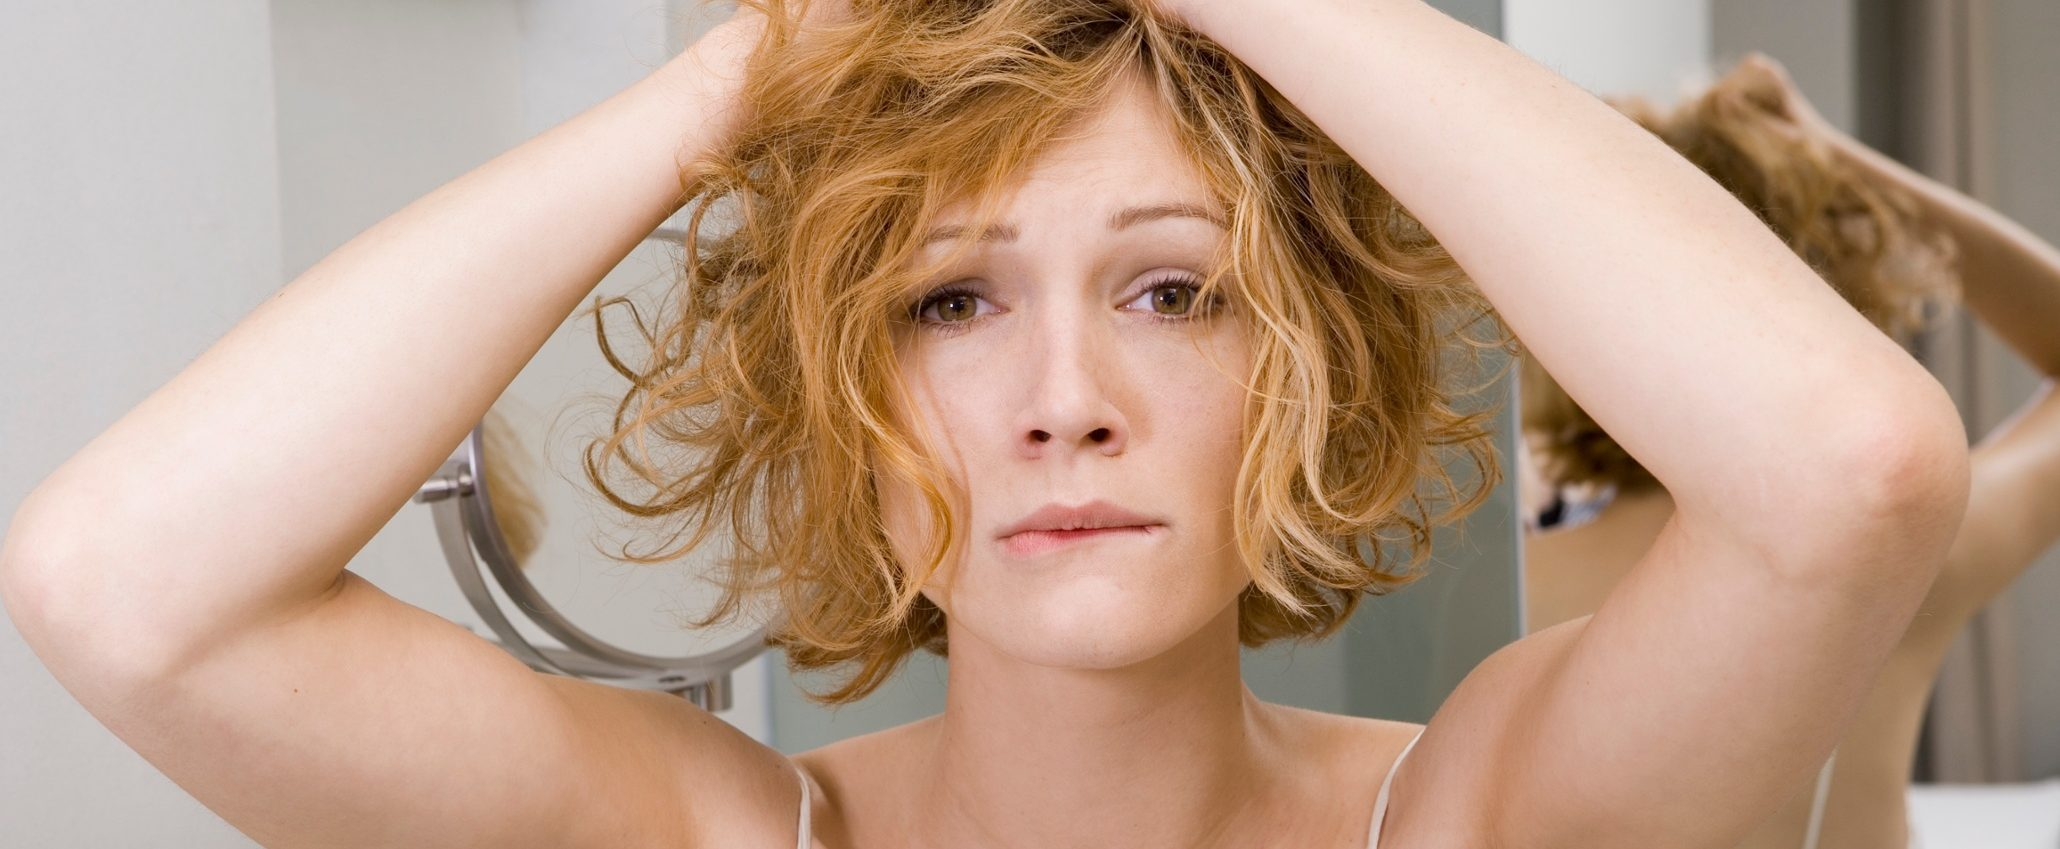 Woman in bathroom tearing her hair out